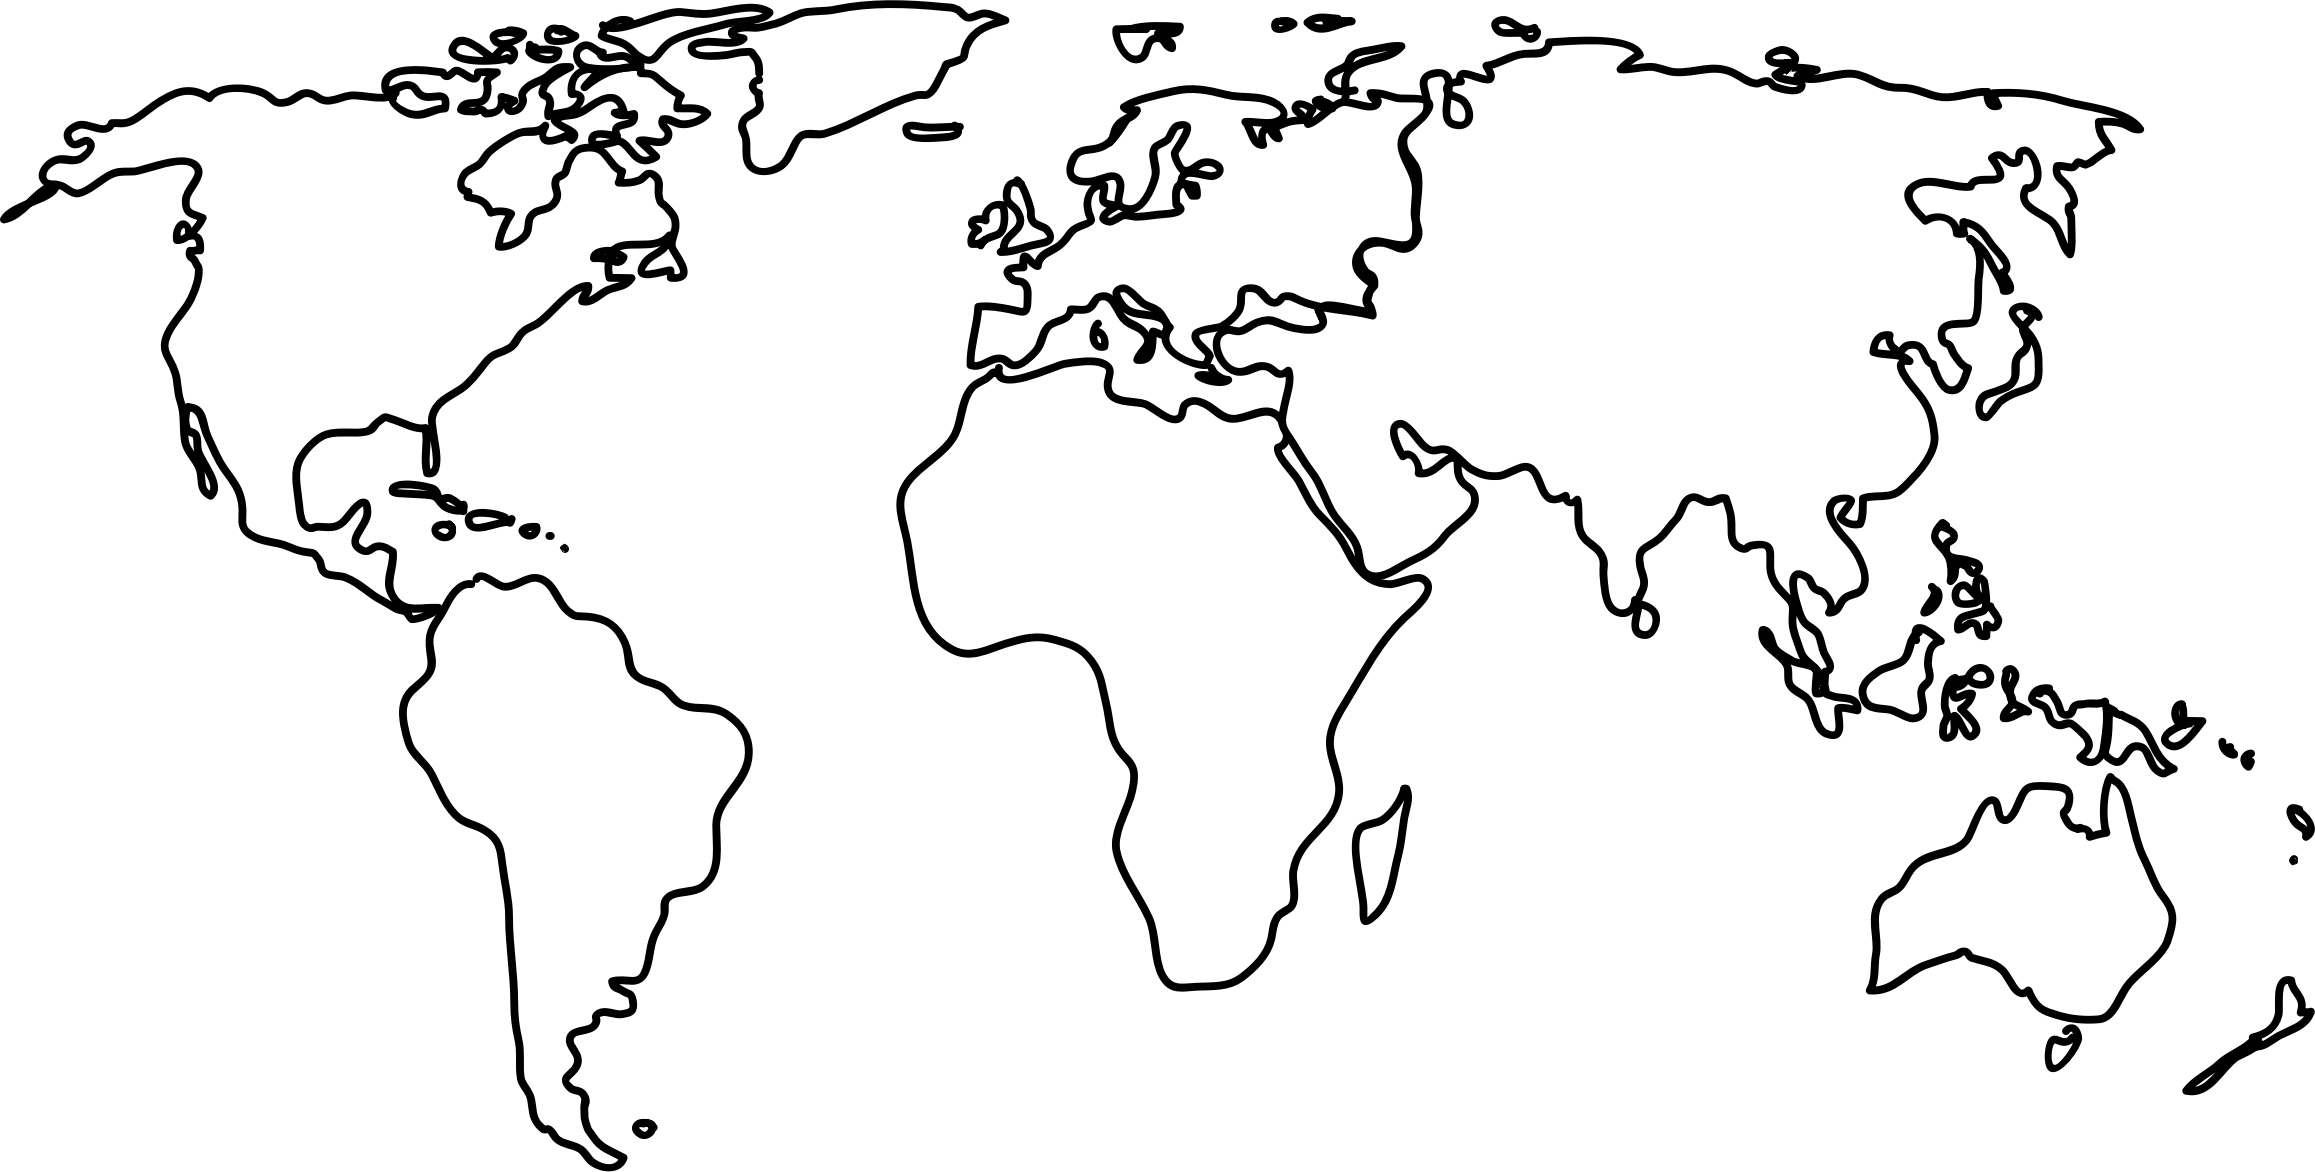 World Map By Jkarthik08 Outline World Map On